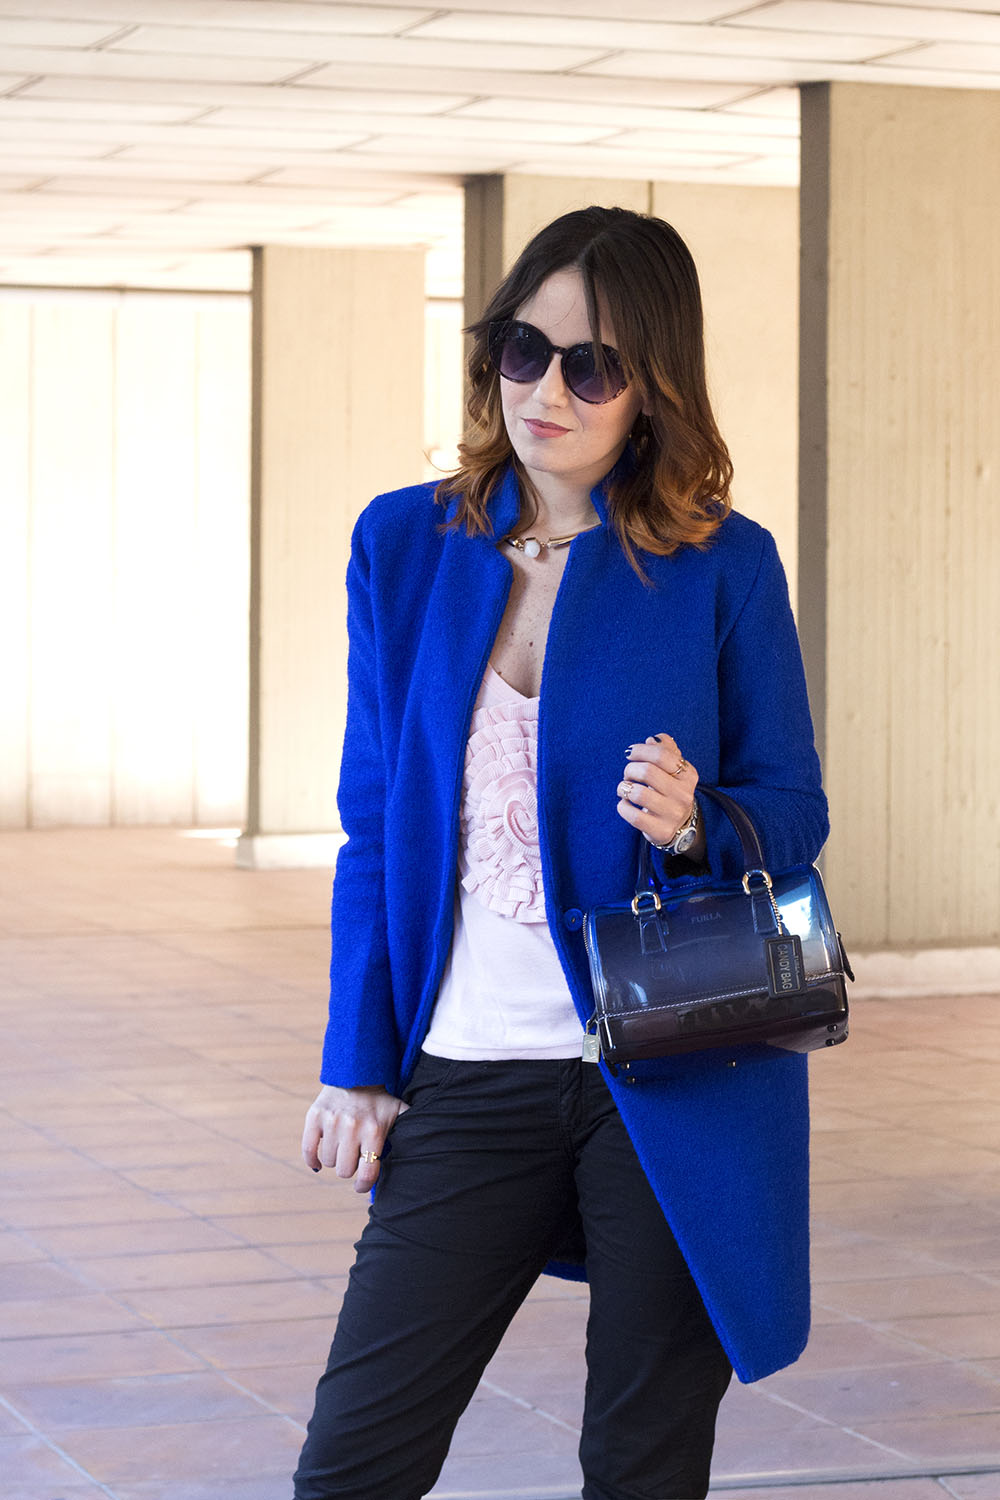 OUTFIT: CAPPOTTO BLU E SNEAKERS